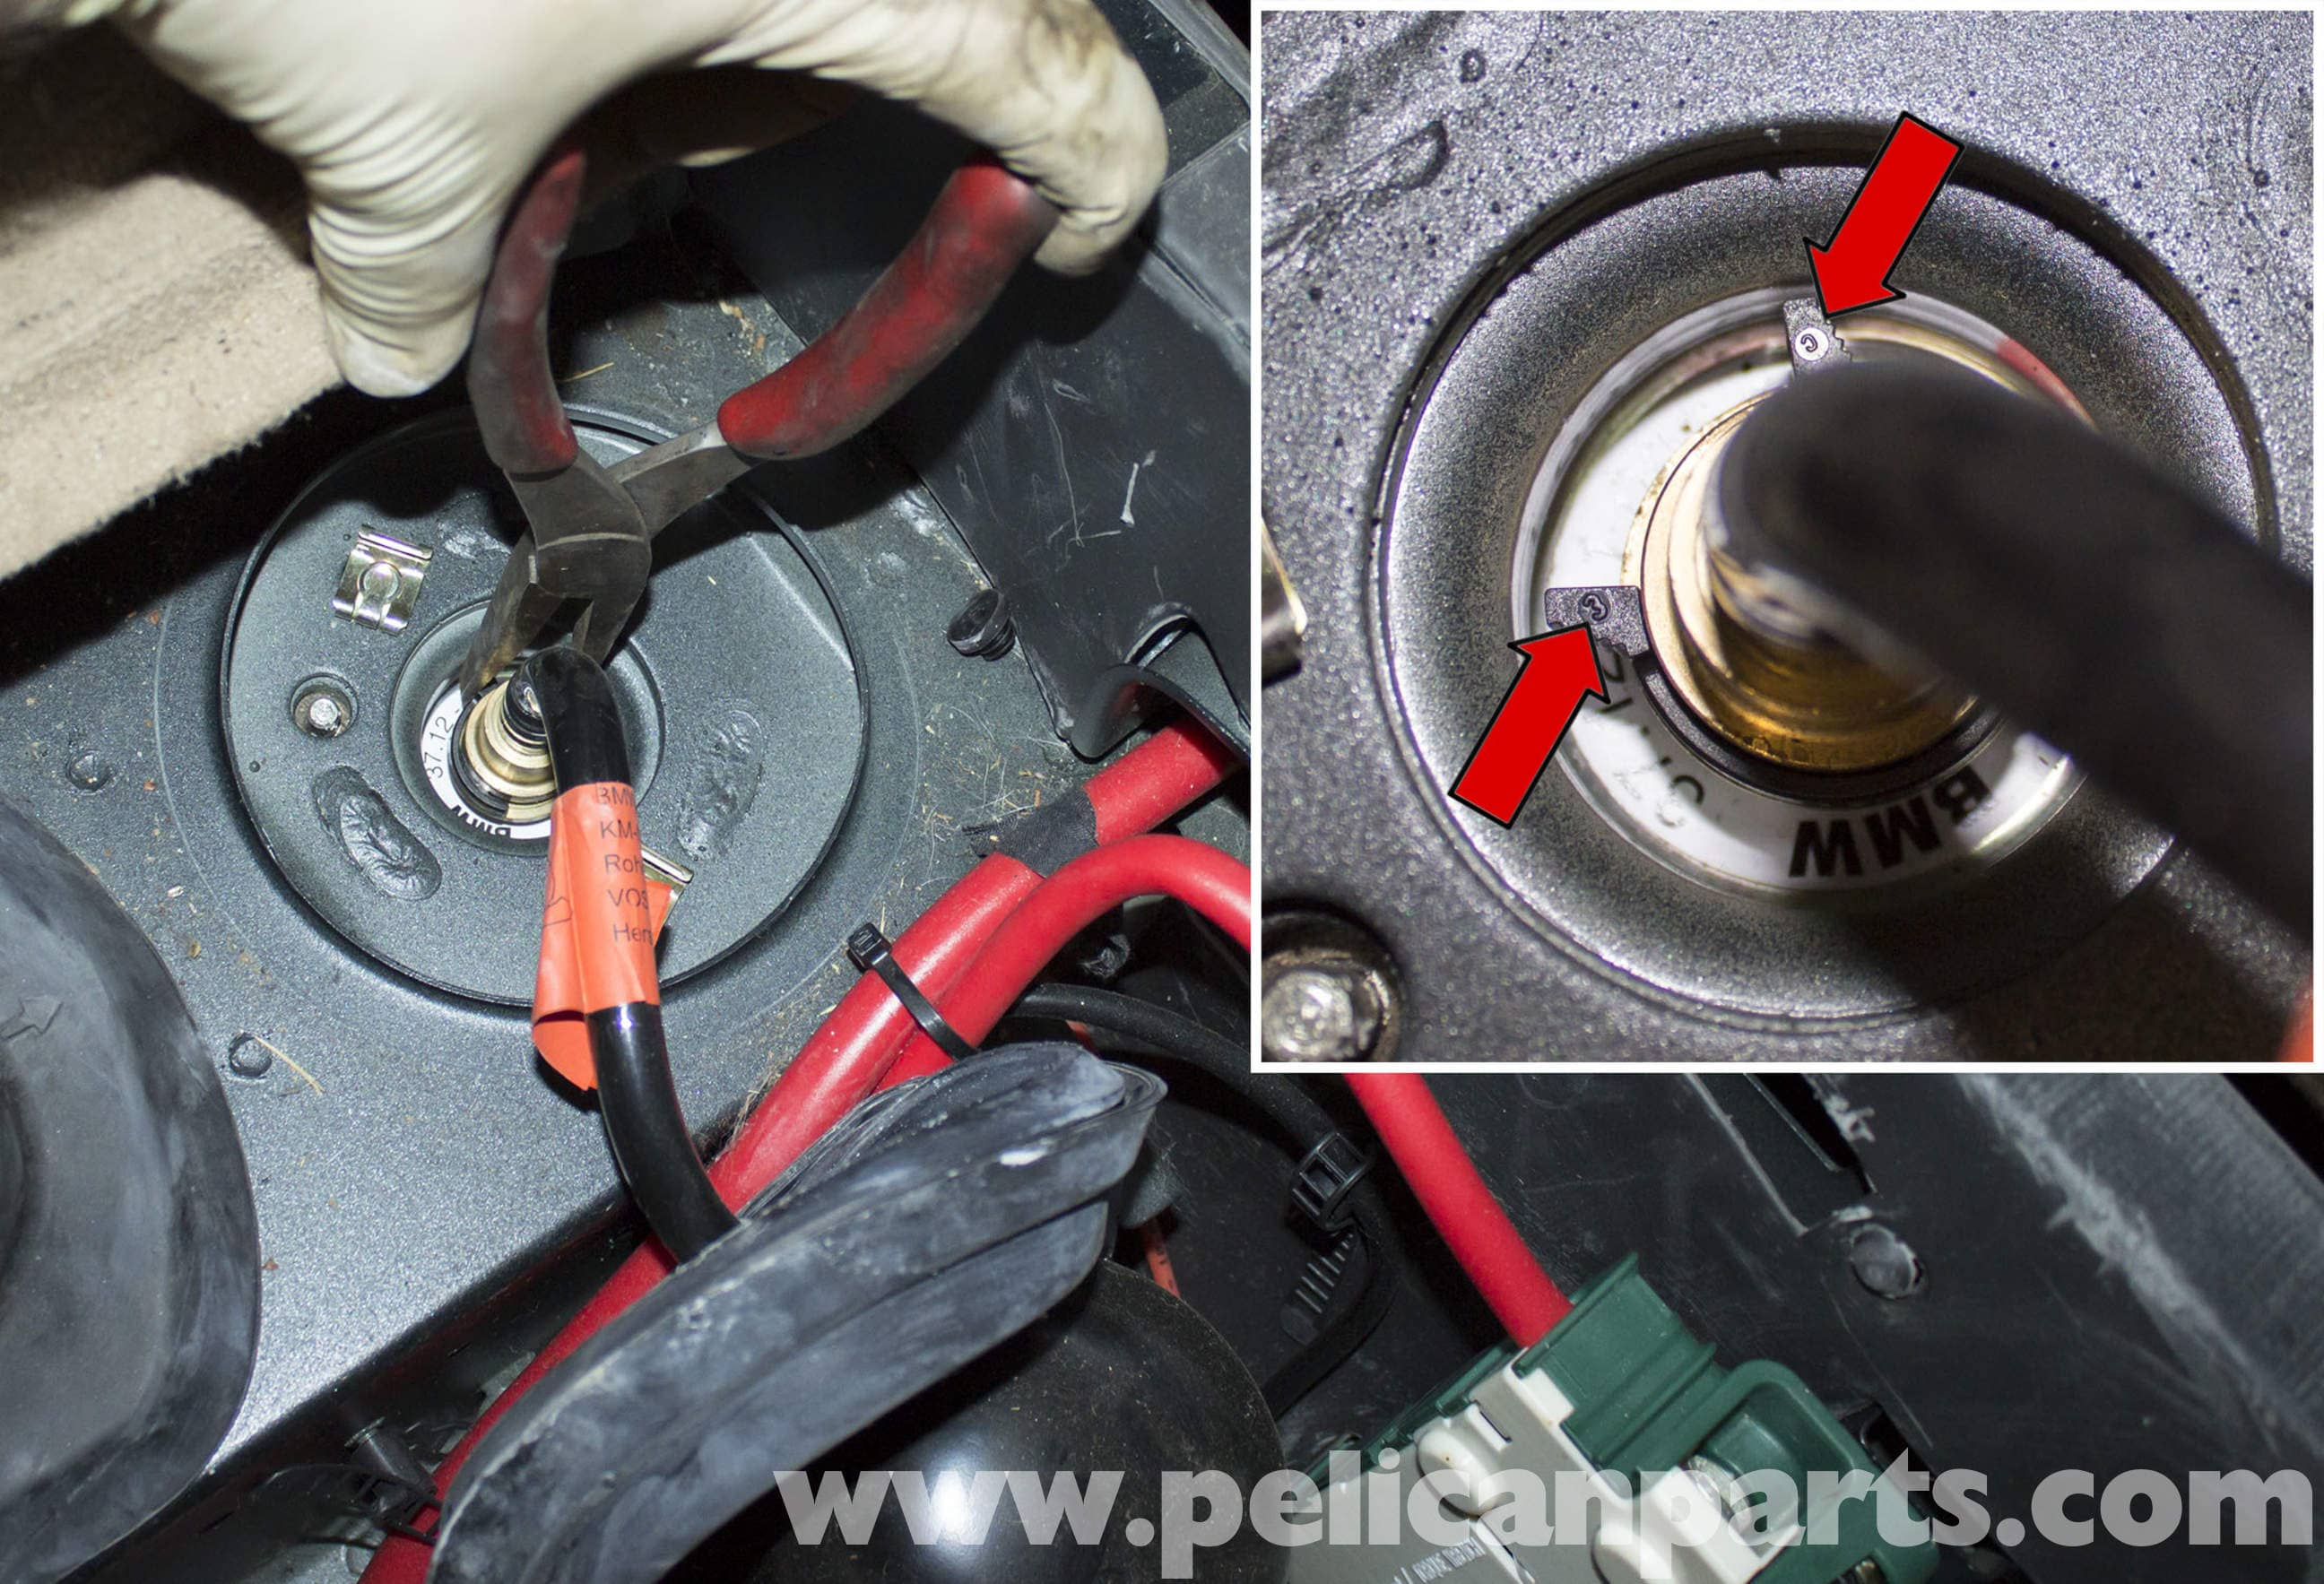 BMW X5 Rear Air Spring Replacement (E53 2000 - 2006